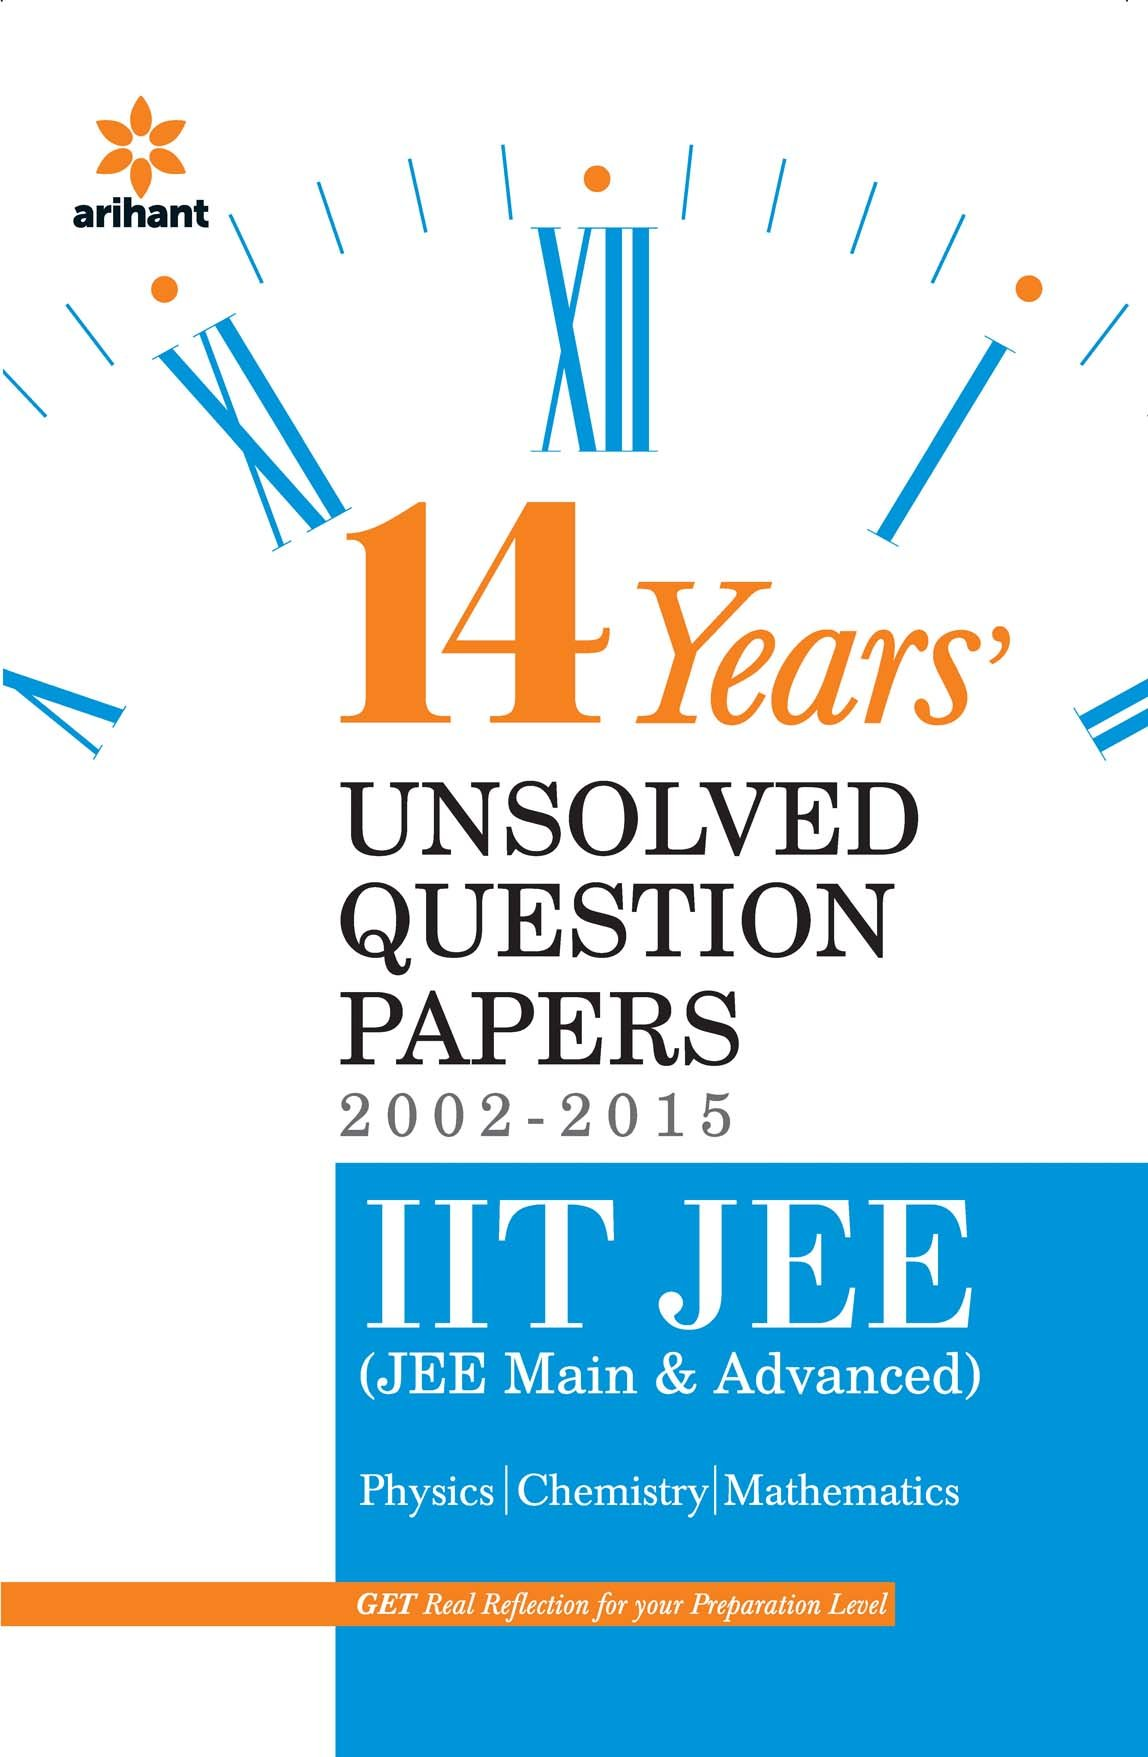 14 Years' Unsolved Question Papers 2002-2015: IIT JEE JEE Main & Advanced  Old Edition: Amazon.in: Arihant Experts: Books